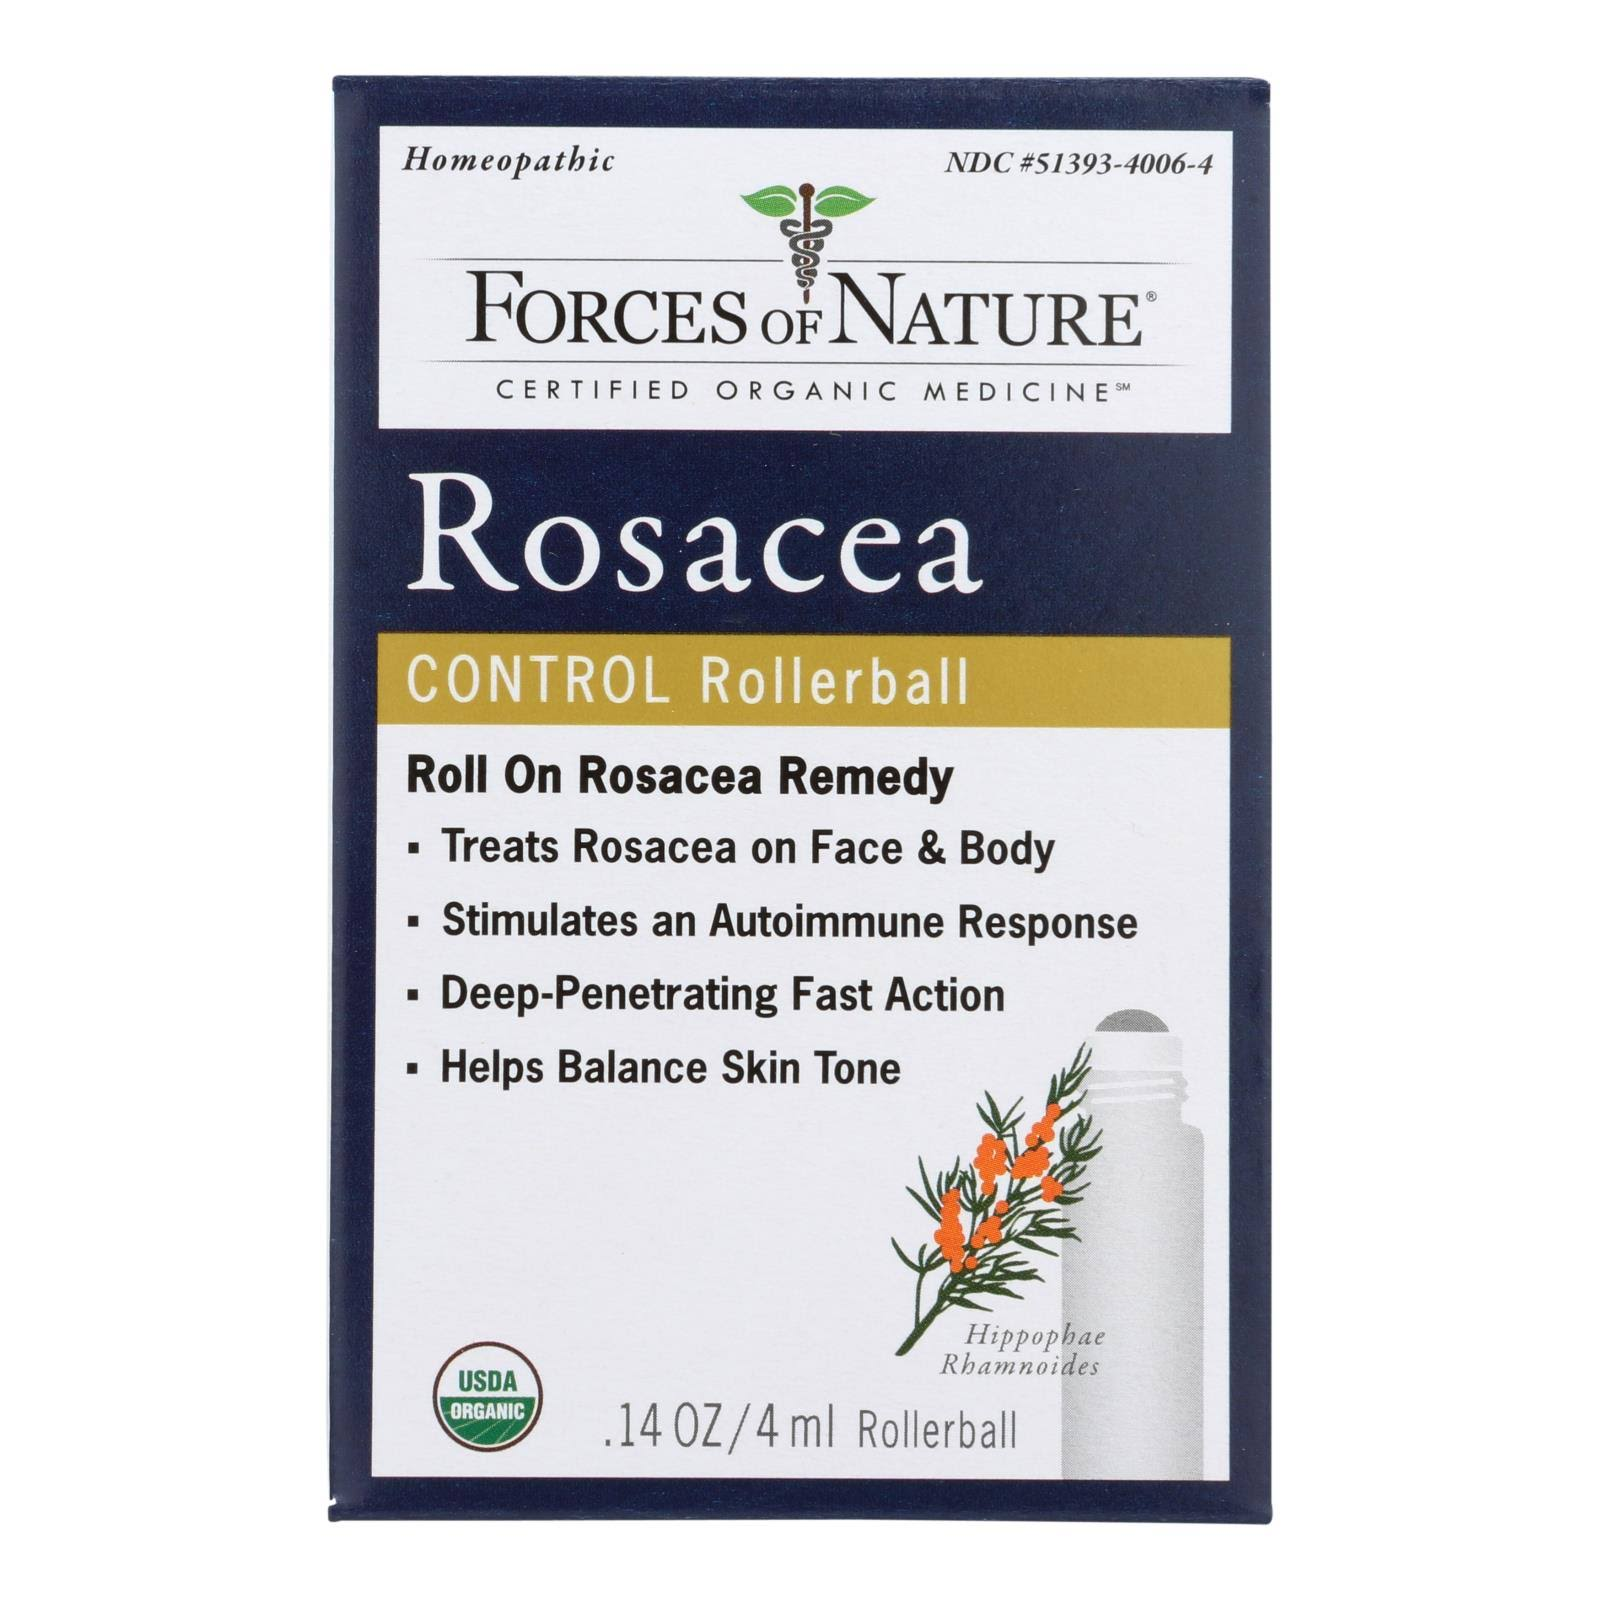 Forces of Nature - Rosacea Control - 4 ml